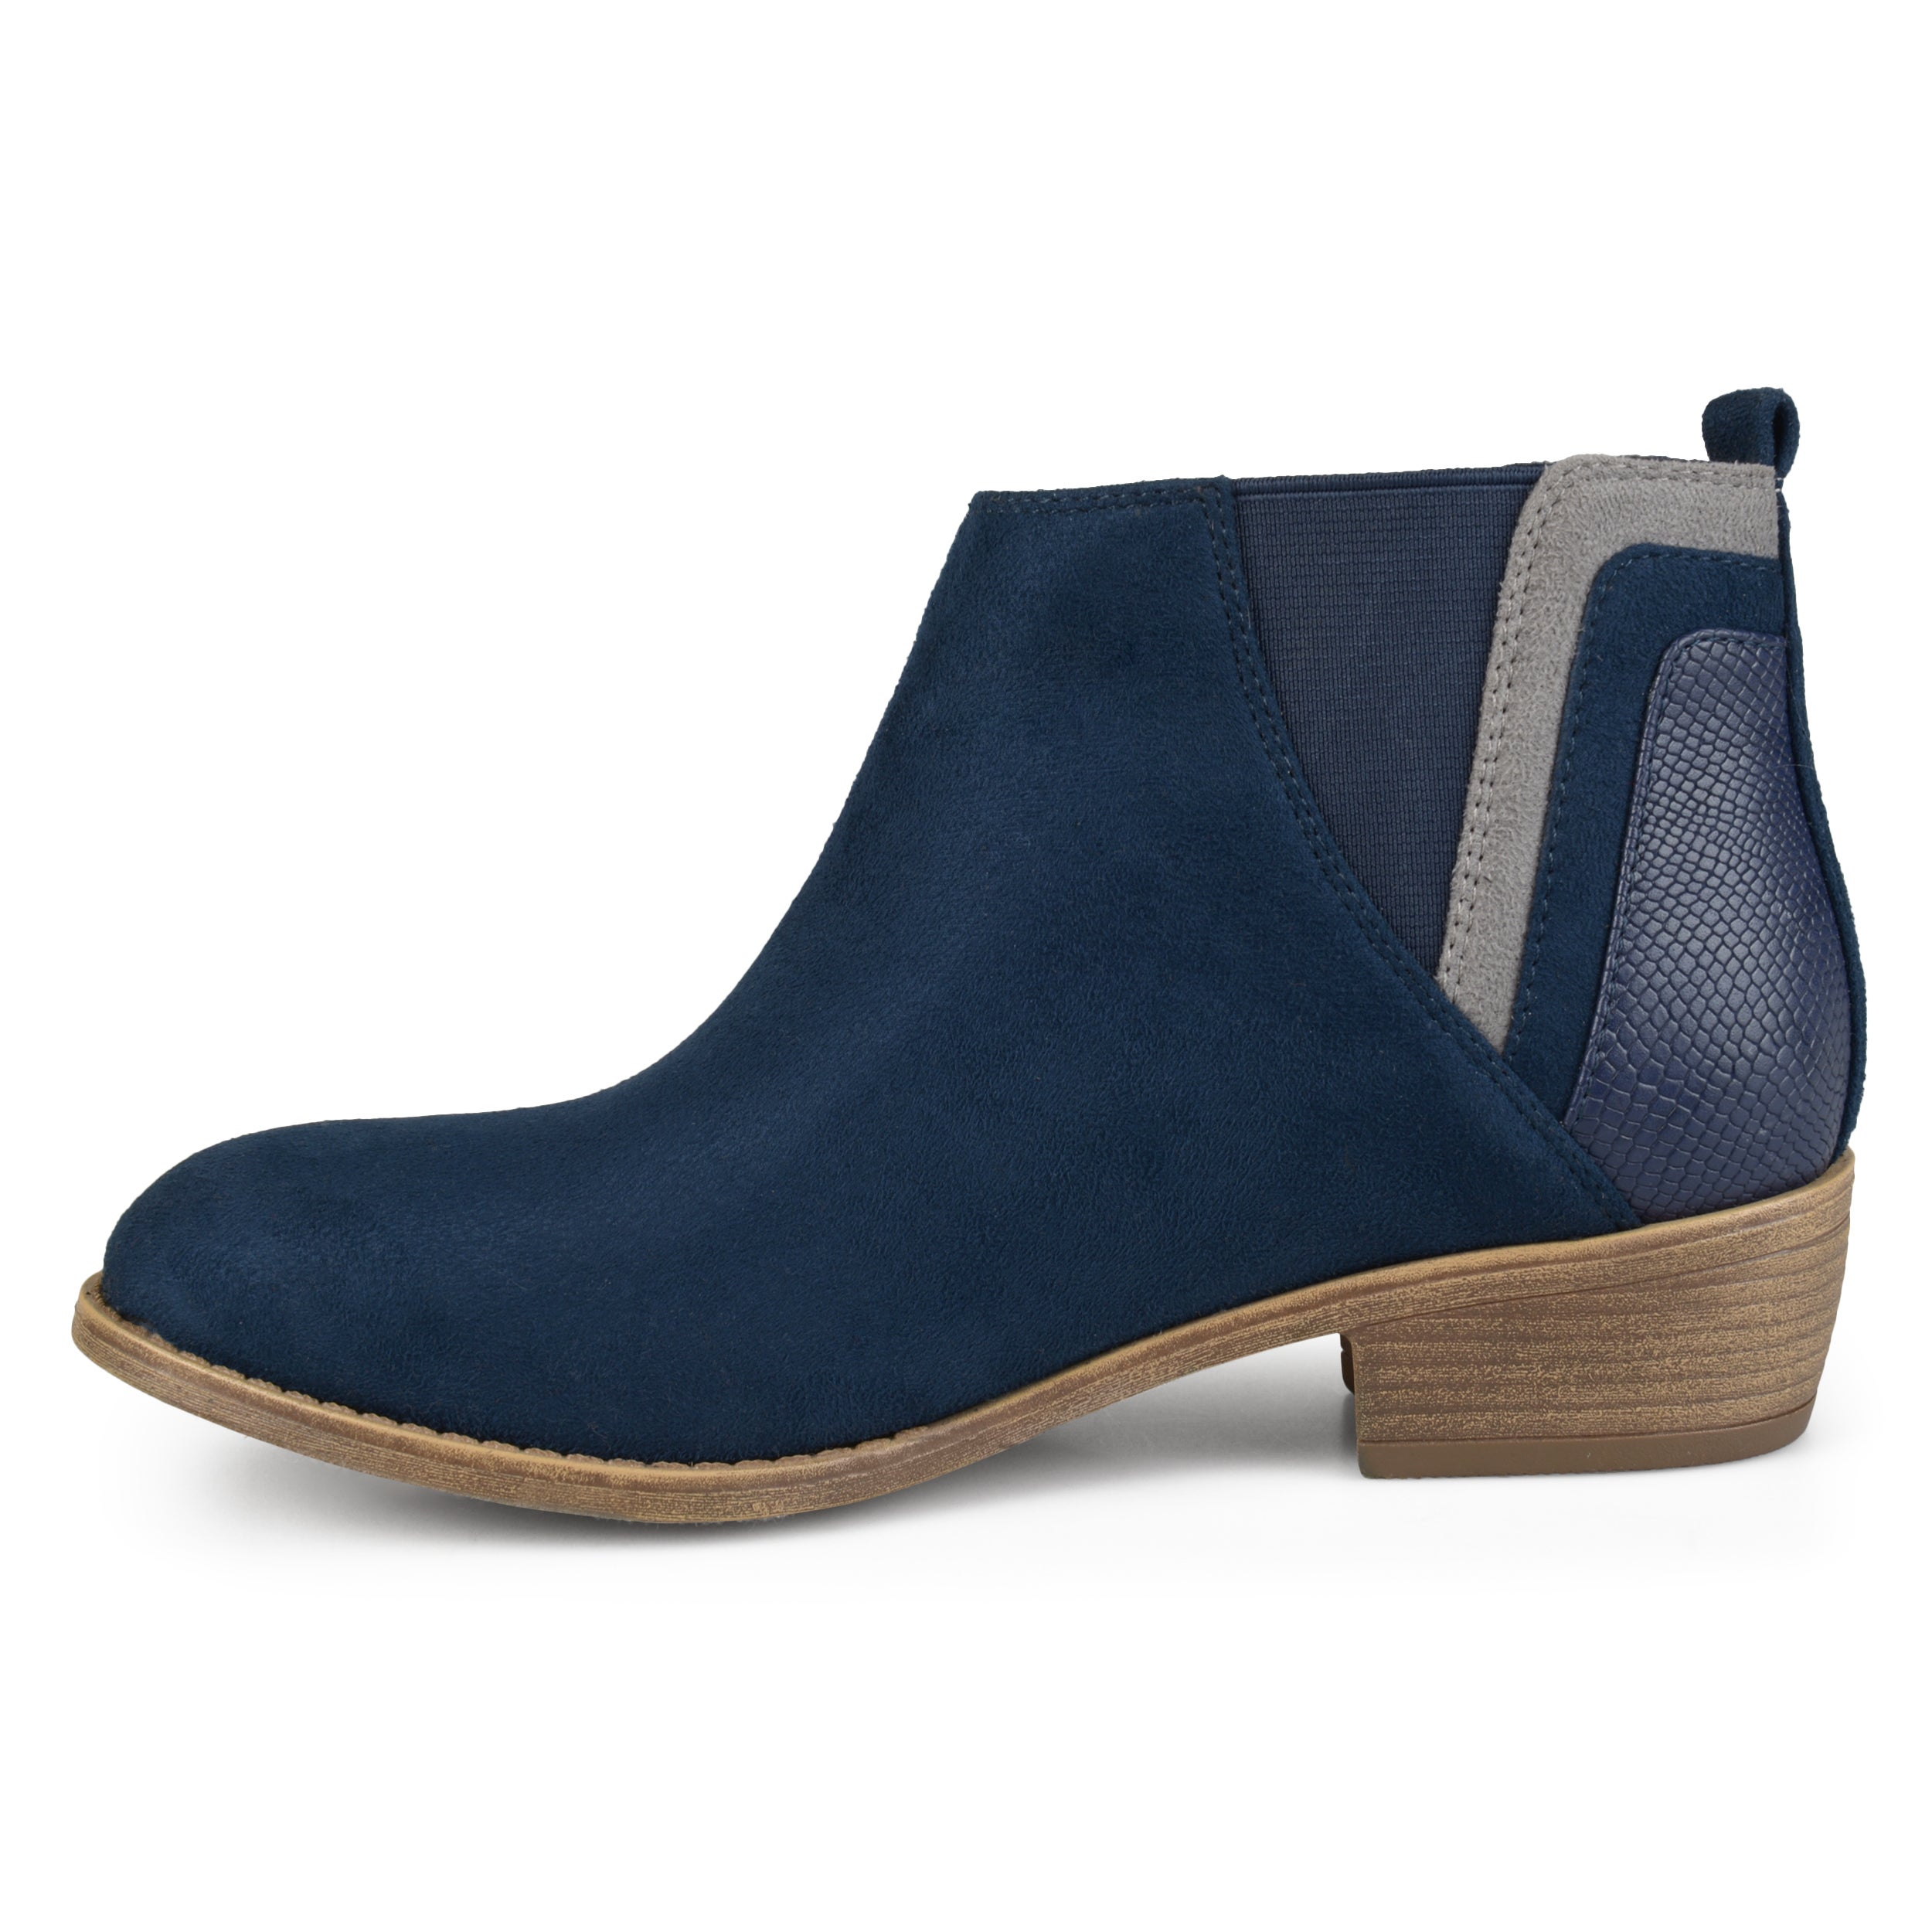 discount latest collections Journee Collection Wiley ... Women's Ankle Boots discount latest pay with paypal 2VOhTs